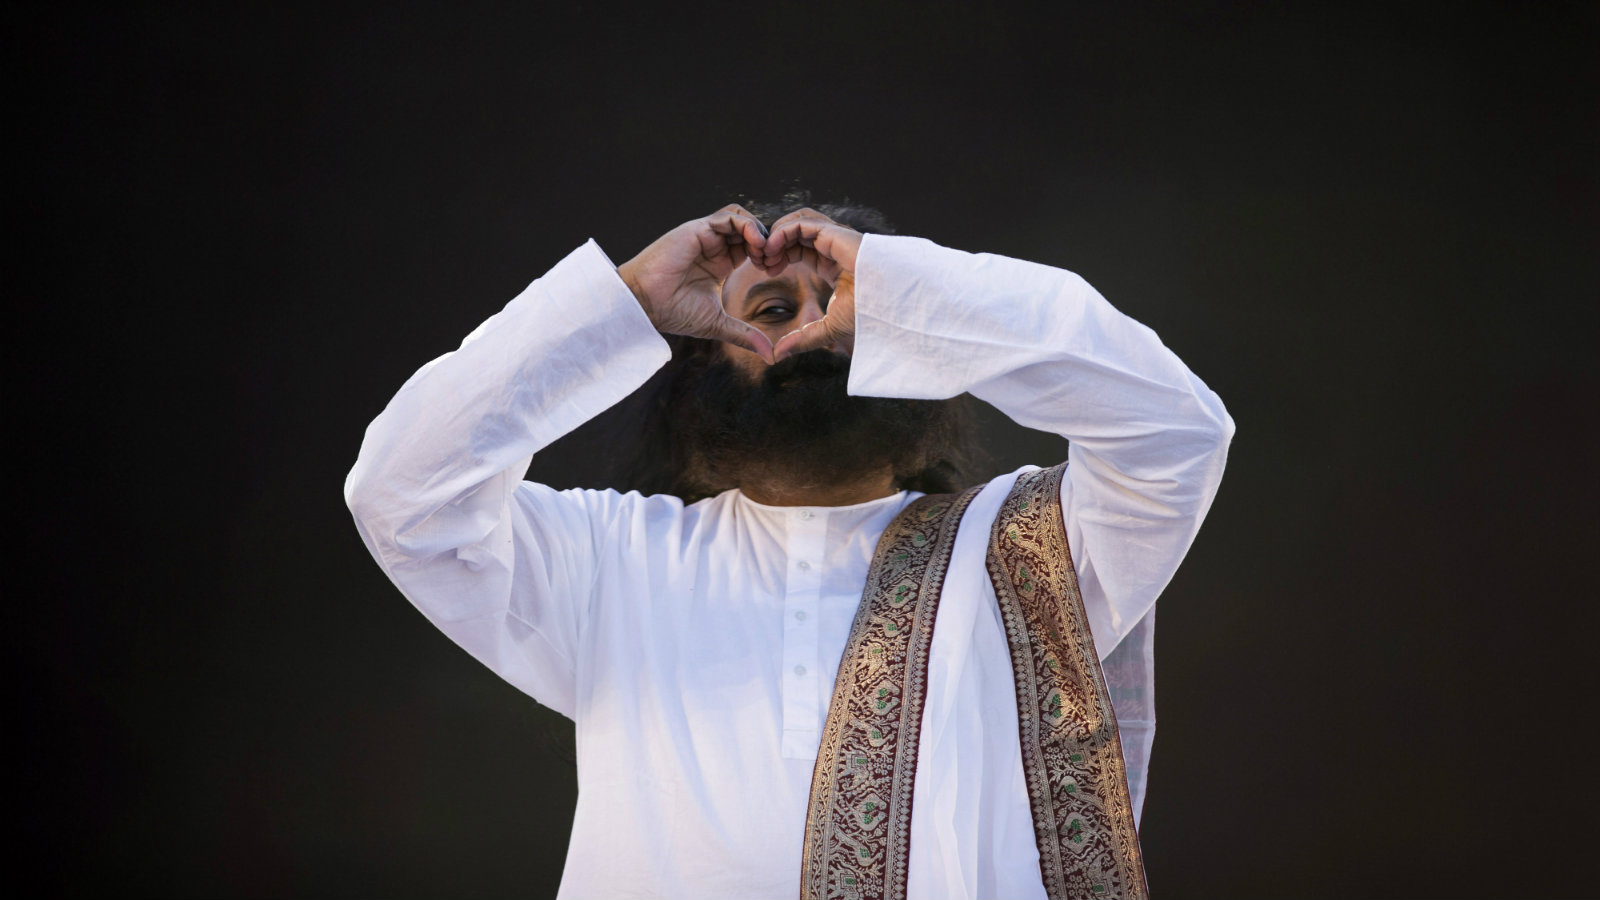 India's spiritual leader and founder of Art of Living Foundation Sri Sri Ravi Shankar looks to the crowd through a heart formed with his hands before leading a meditation with thousands of participants in Buenos Aires, Argentina, Sunday, Sept. 9, 2012.